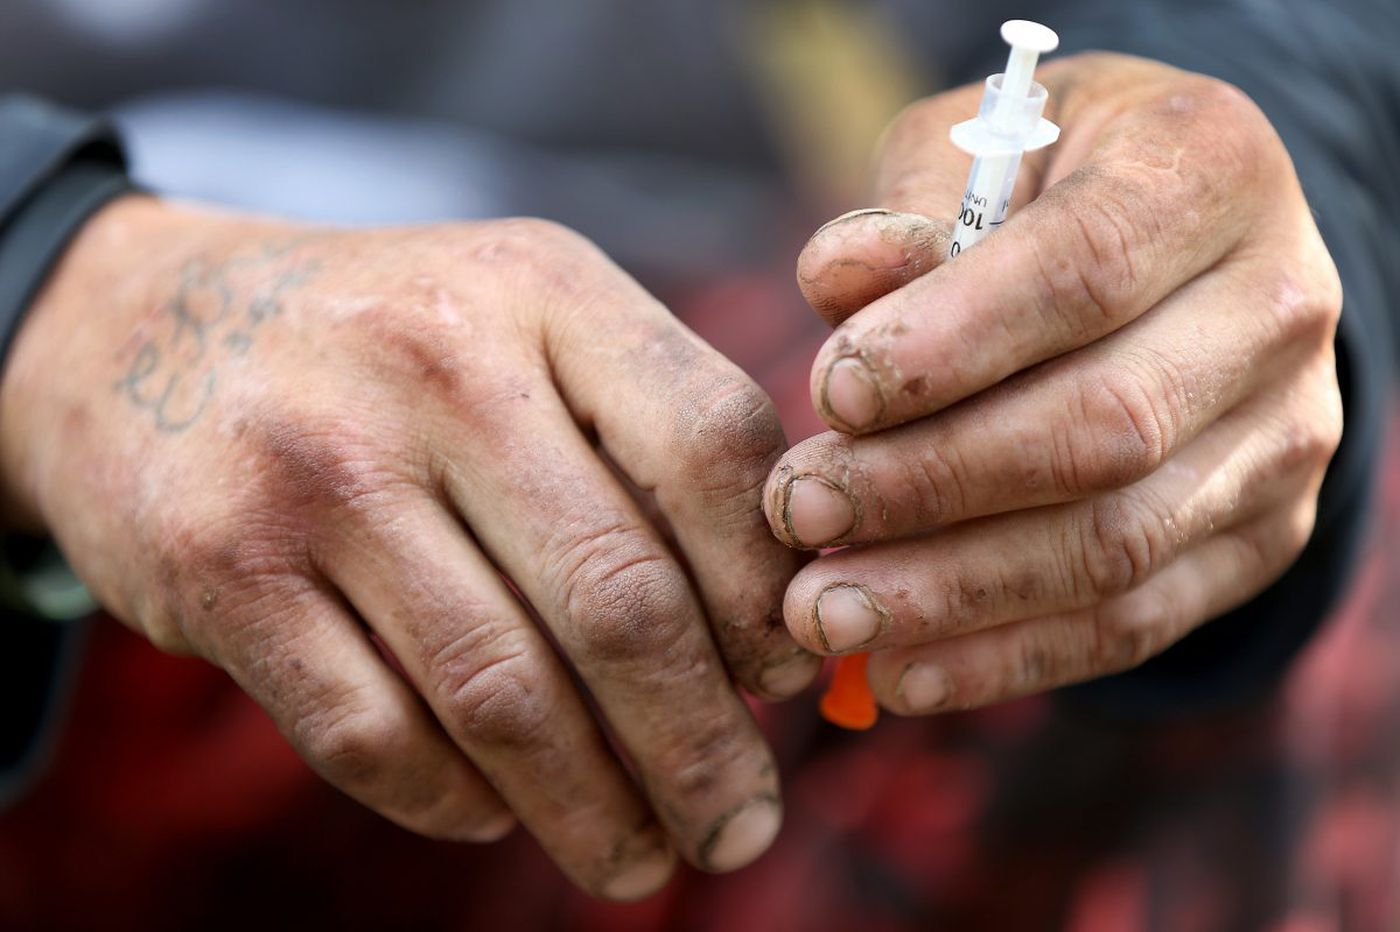 Gov. Wolf's opioid triage a start, but keep costs and effectiveness in view | Editorial